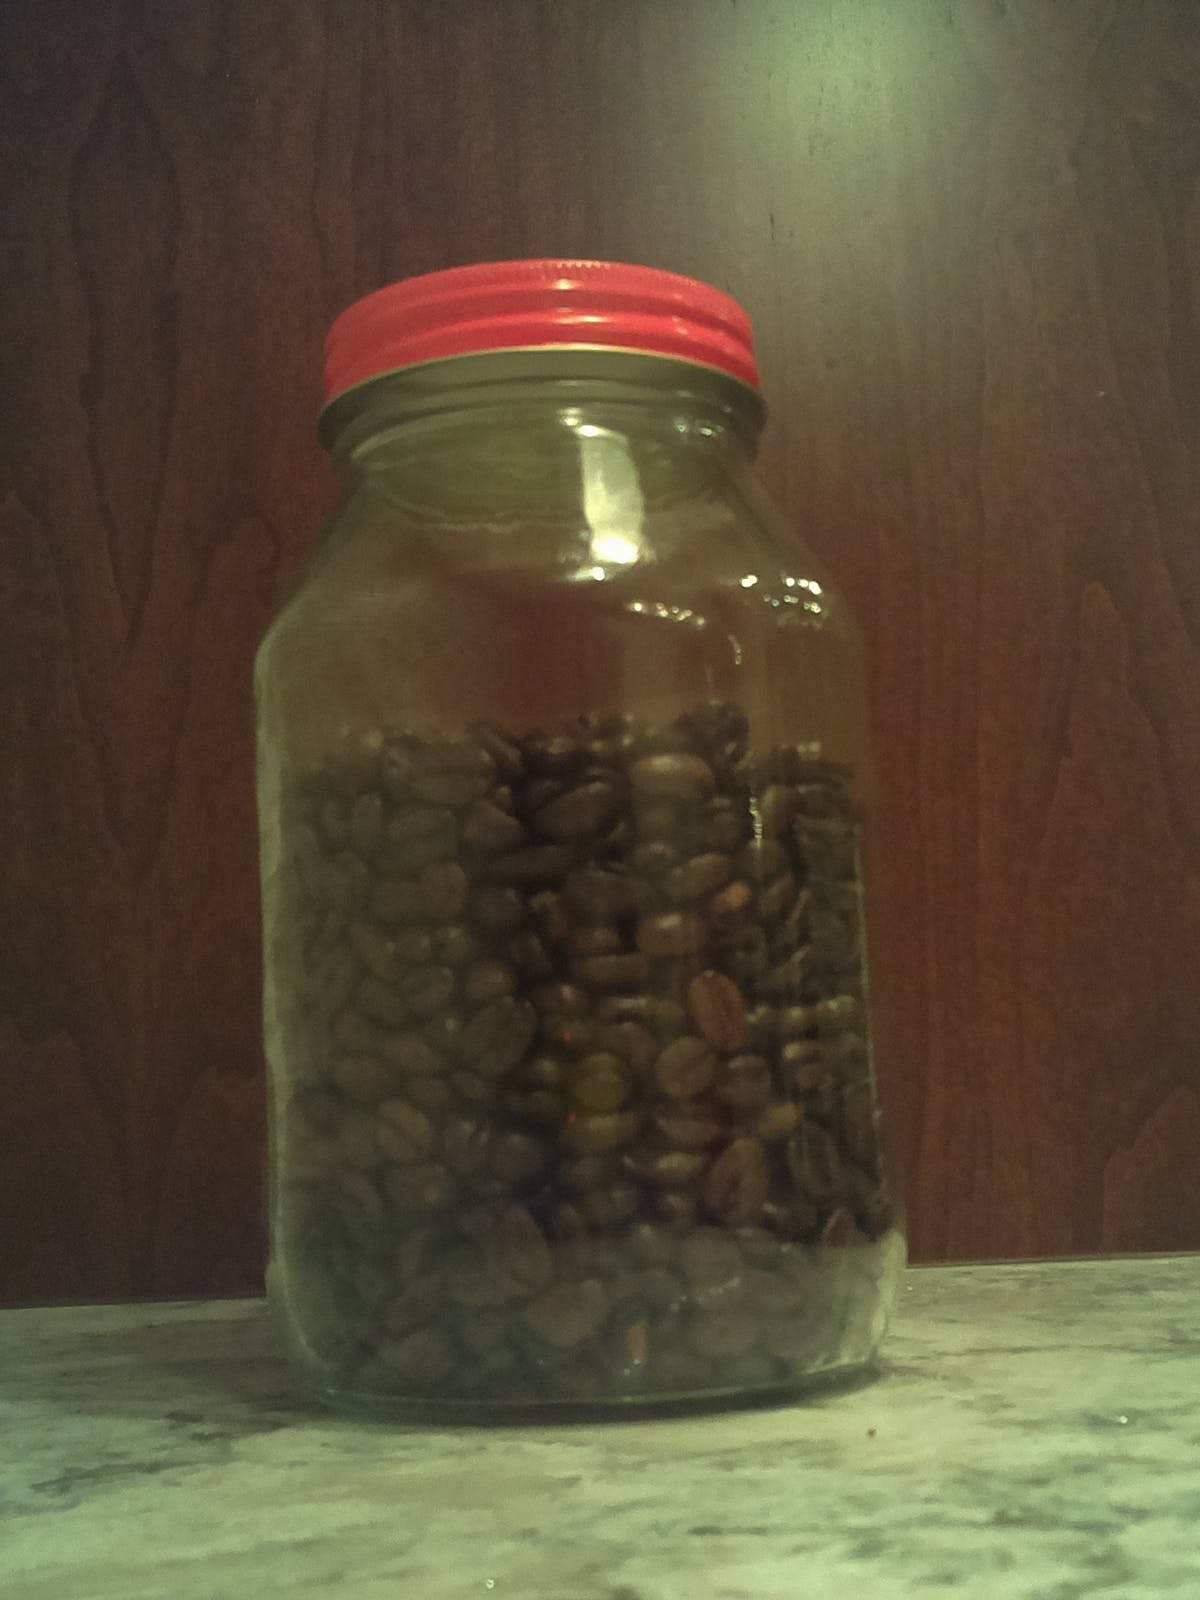 Picture of coffee bean jar when full taken by JavaWatch